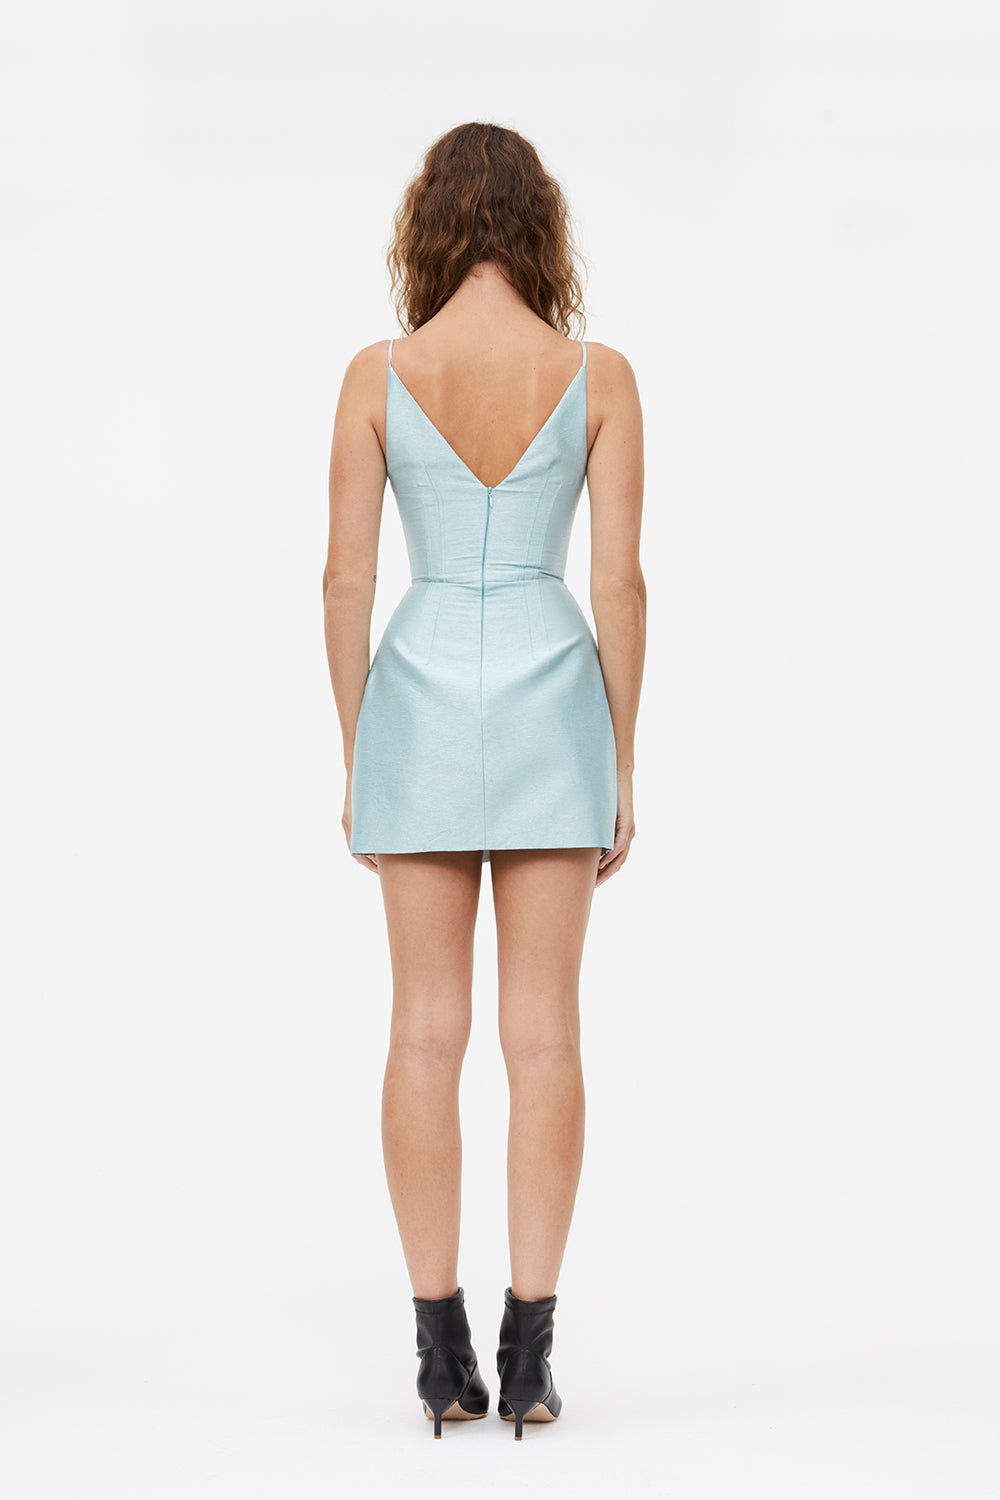 BEAMS & DARTS MINI DRESS